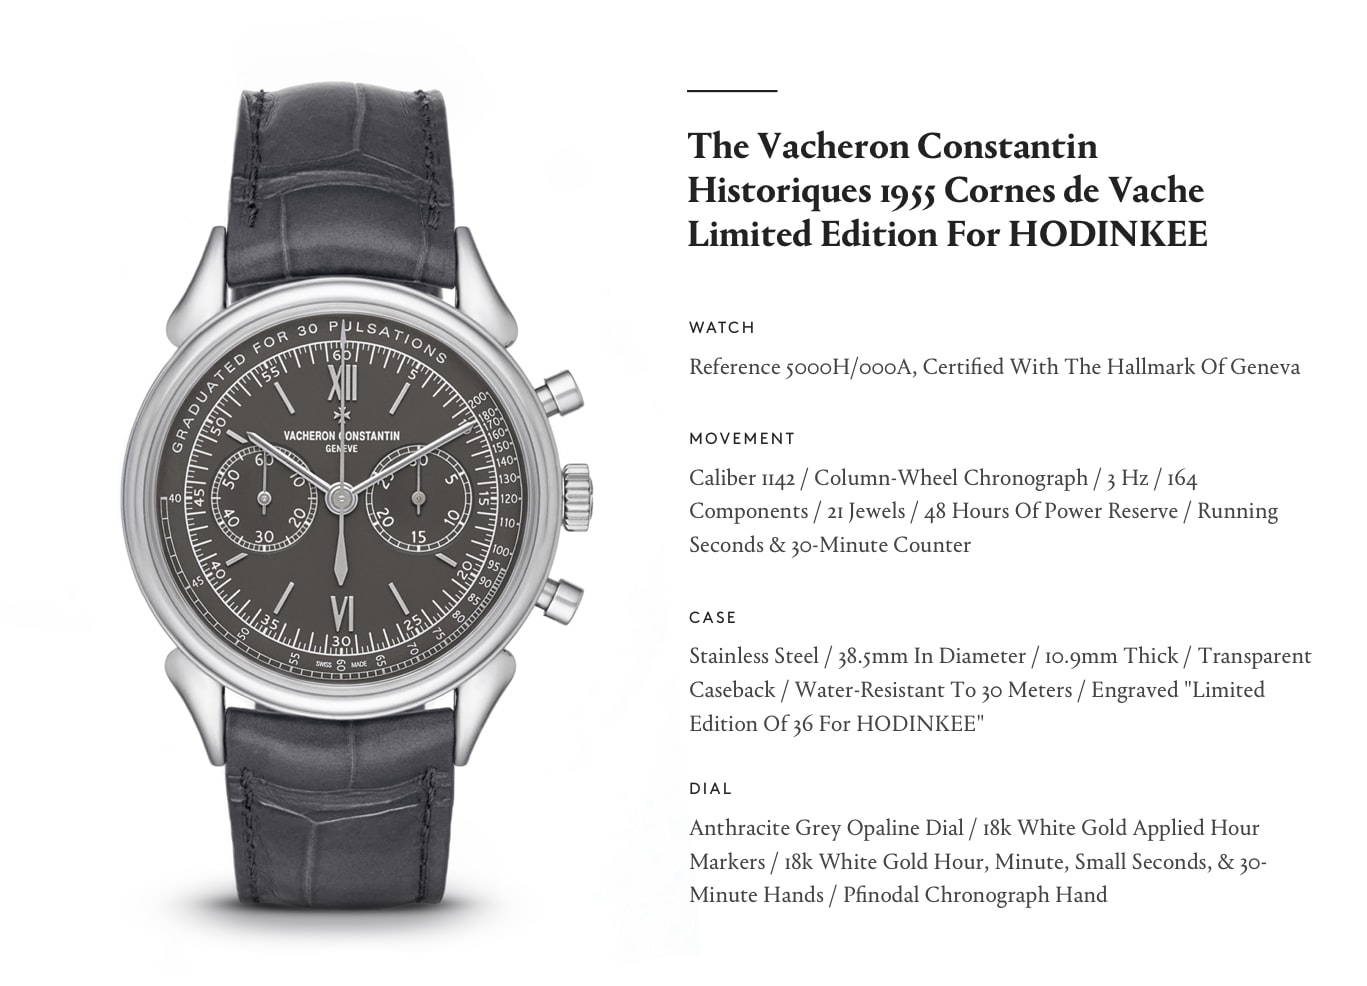 Vacheron Constantin Historiques Cornes de Vache 1955 Limited Edition For HODINKEE In The Shop: Introducing The Vacheron Constantin Historiques Cornes de Vache 1955 Limited Edition For HODINKEE In The Shop: Introducing The Vacheron Constantin Historiques Cornes de Vache 1955 Limited Edition For HODINKEE vc graphic 2